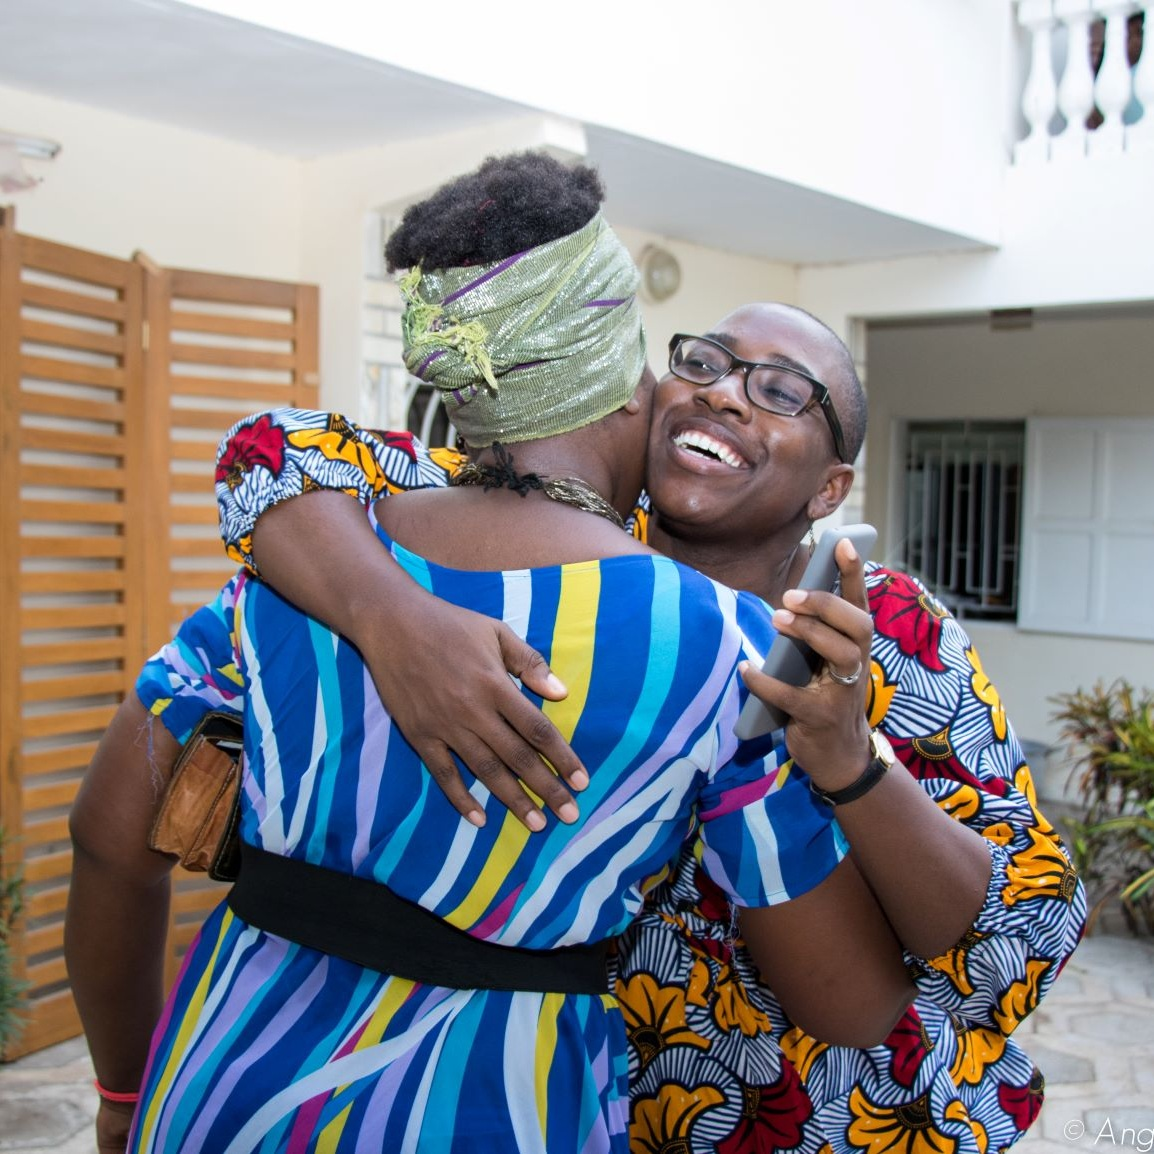 Throwback to Eyala's launch party in Dakar. Nothing beats the warm embrace of a feminist sister. Photo by  Angelique U. Nwachukwu.